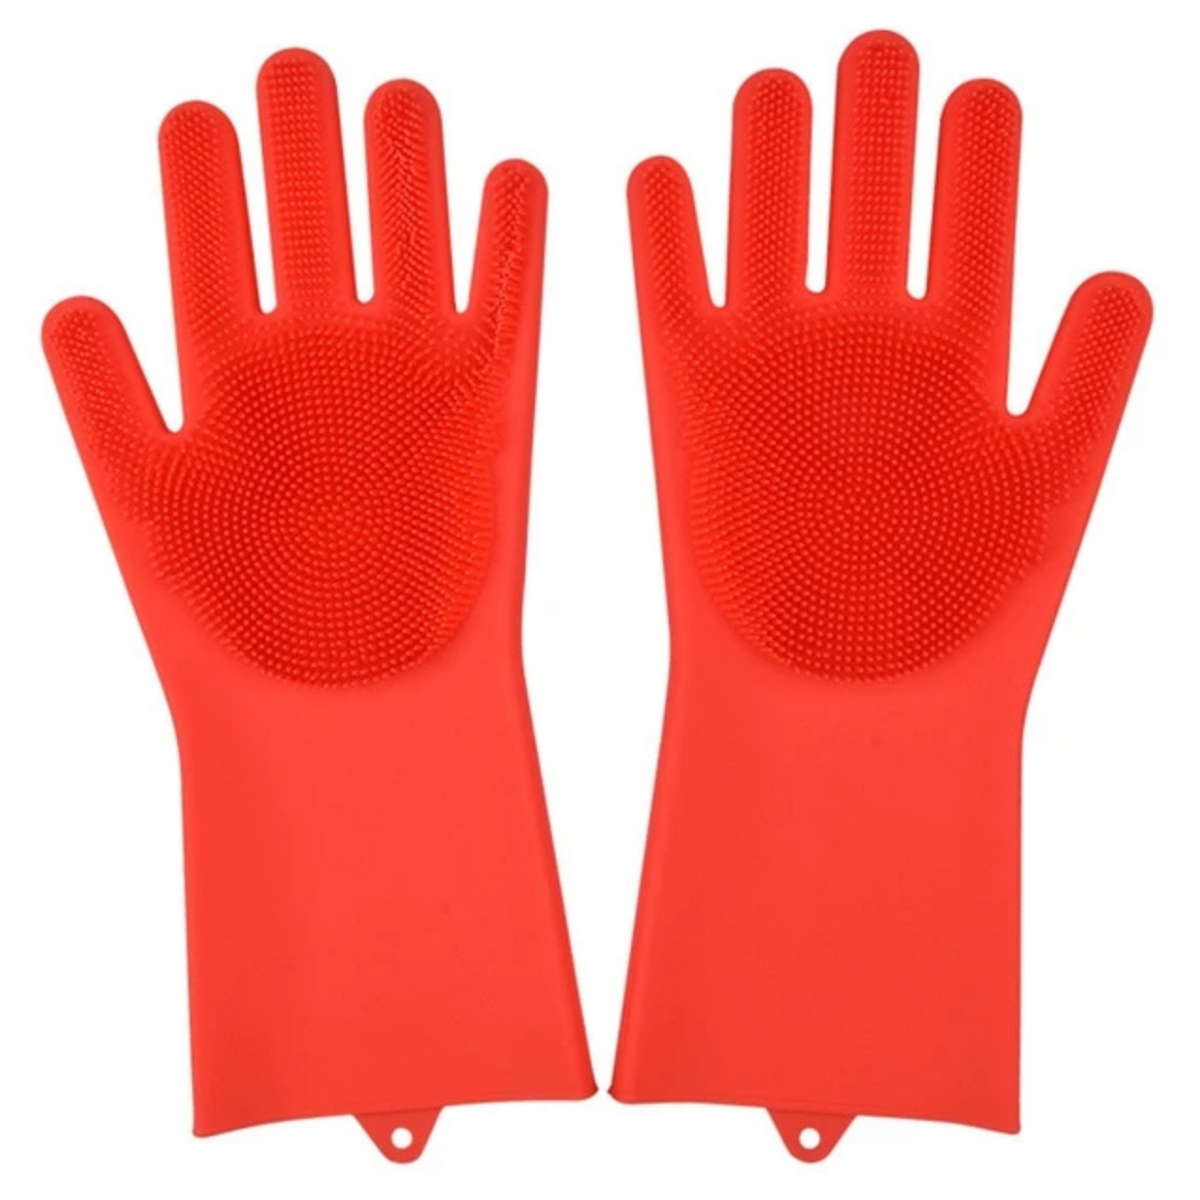 SOFT SCRUBBER CLEANING GLOVES (1 PAIR)